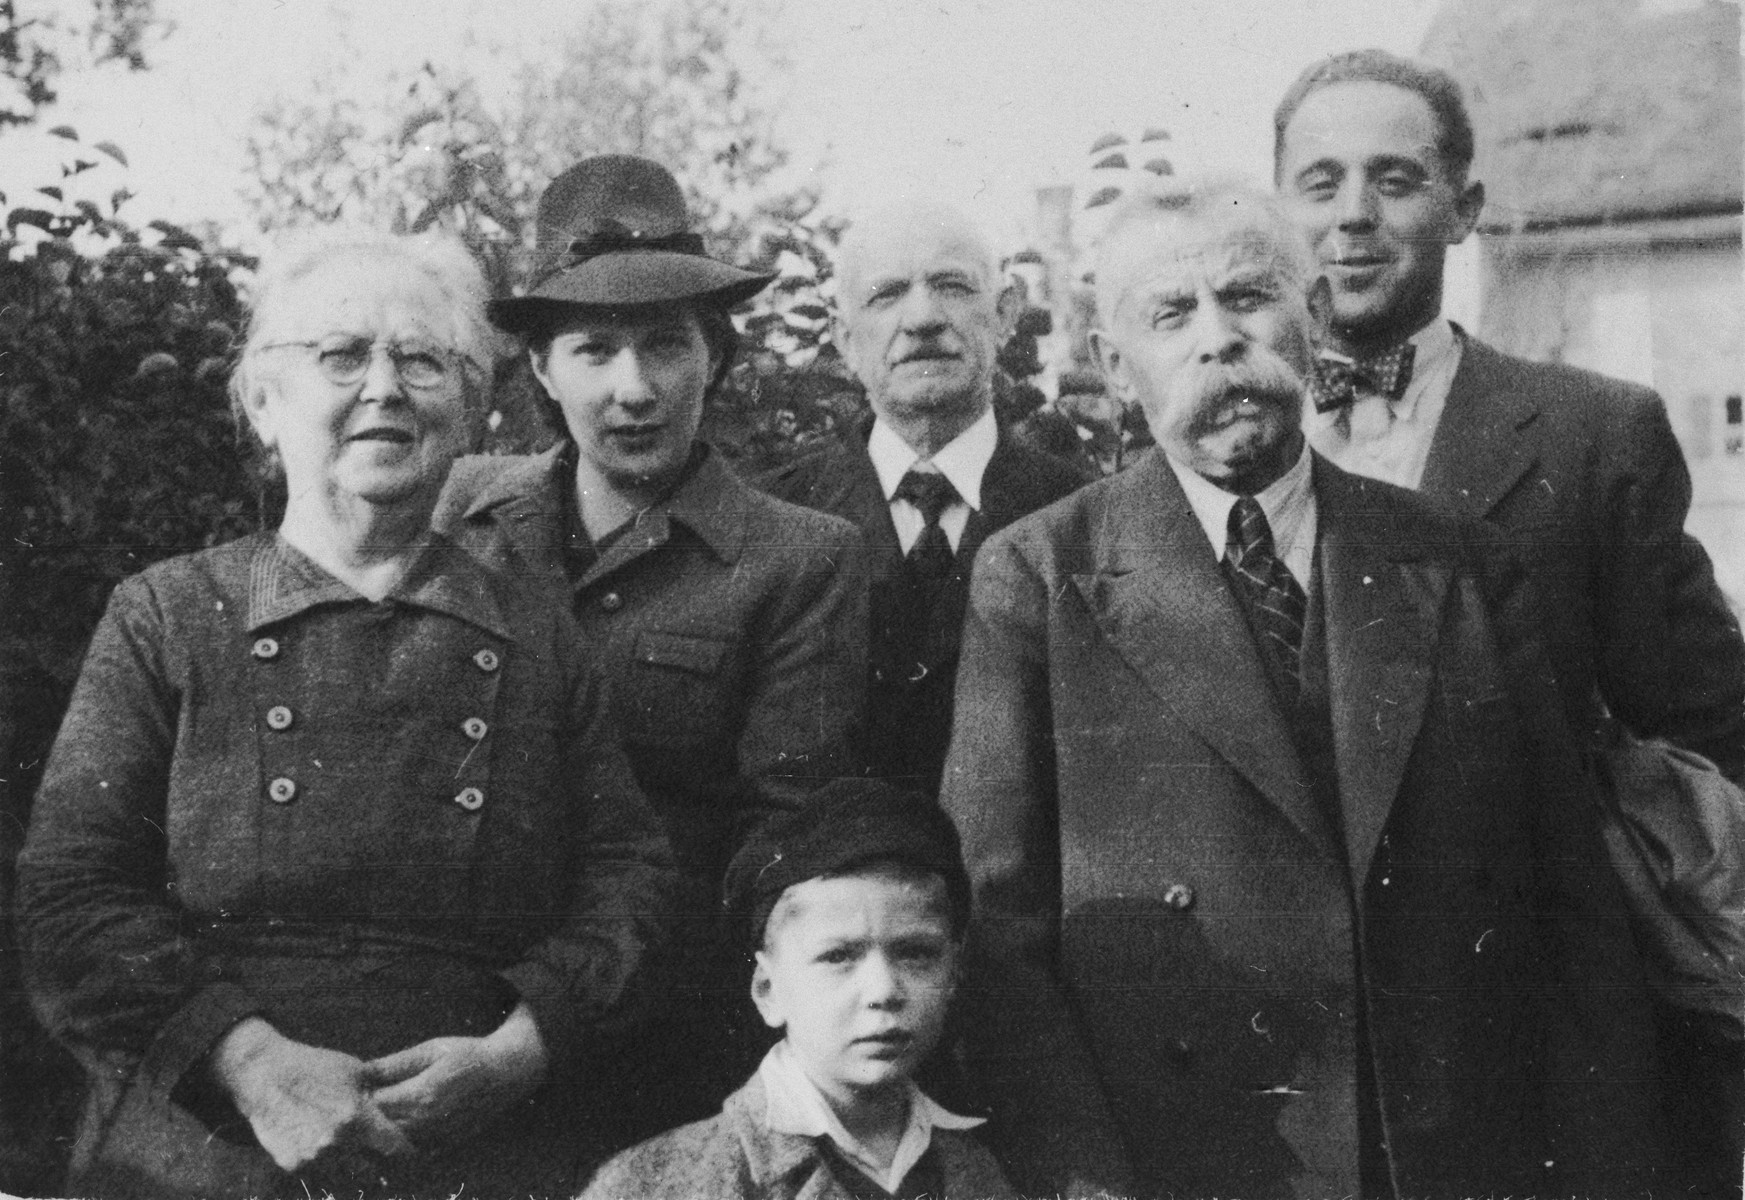 Julius and Fanny Goldstein pose with their son, Bohus, and members of his family.    Pictured from left to right are Fanny, Wilma Goldstein, Michael, Max Redlich (Wilma's father), Julius and Bohus.  Bohus and Wilma (Redlich) Goldstein had two children, Eva and Michael.  The family lived in Olomouc, where Bohus worked for the Prague autoworks.  They all perished during the war.